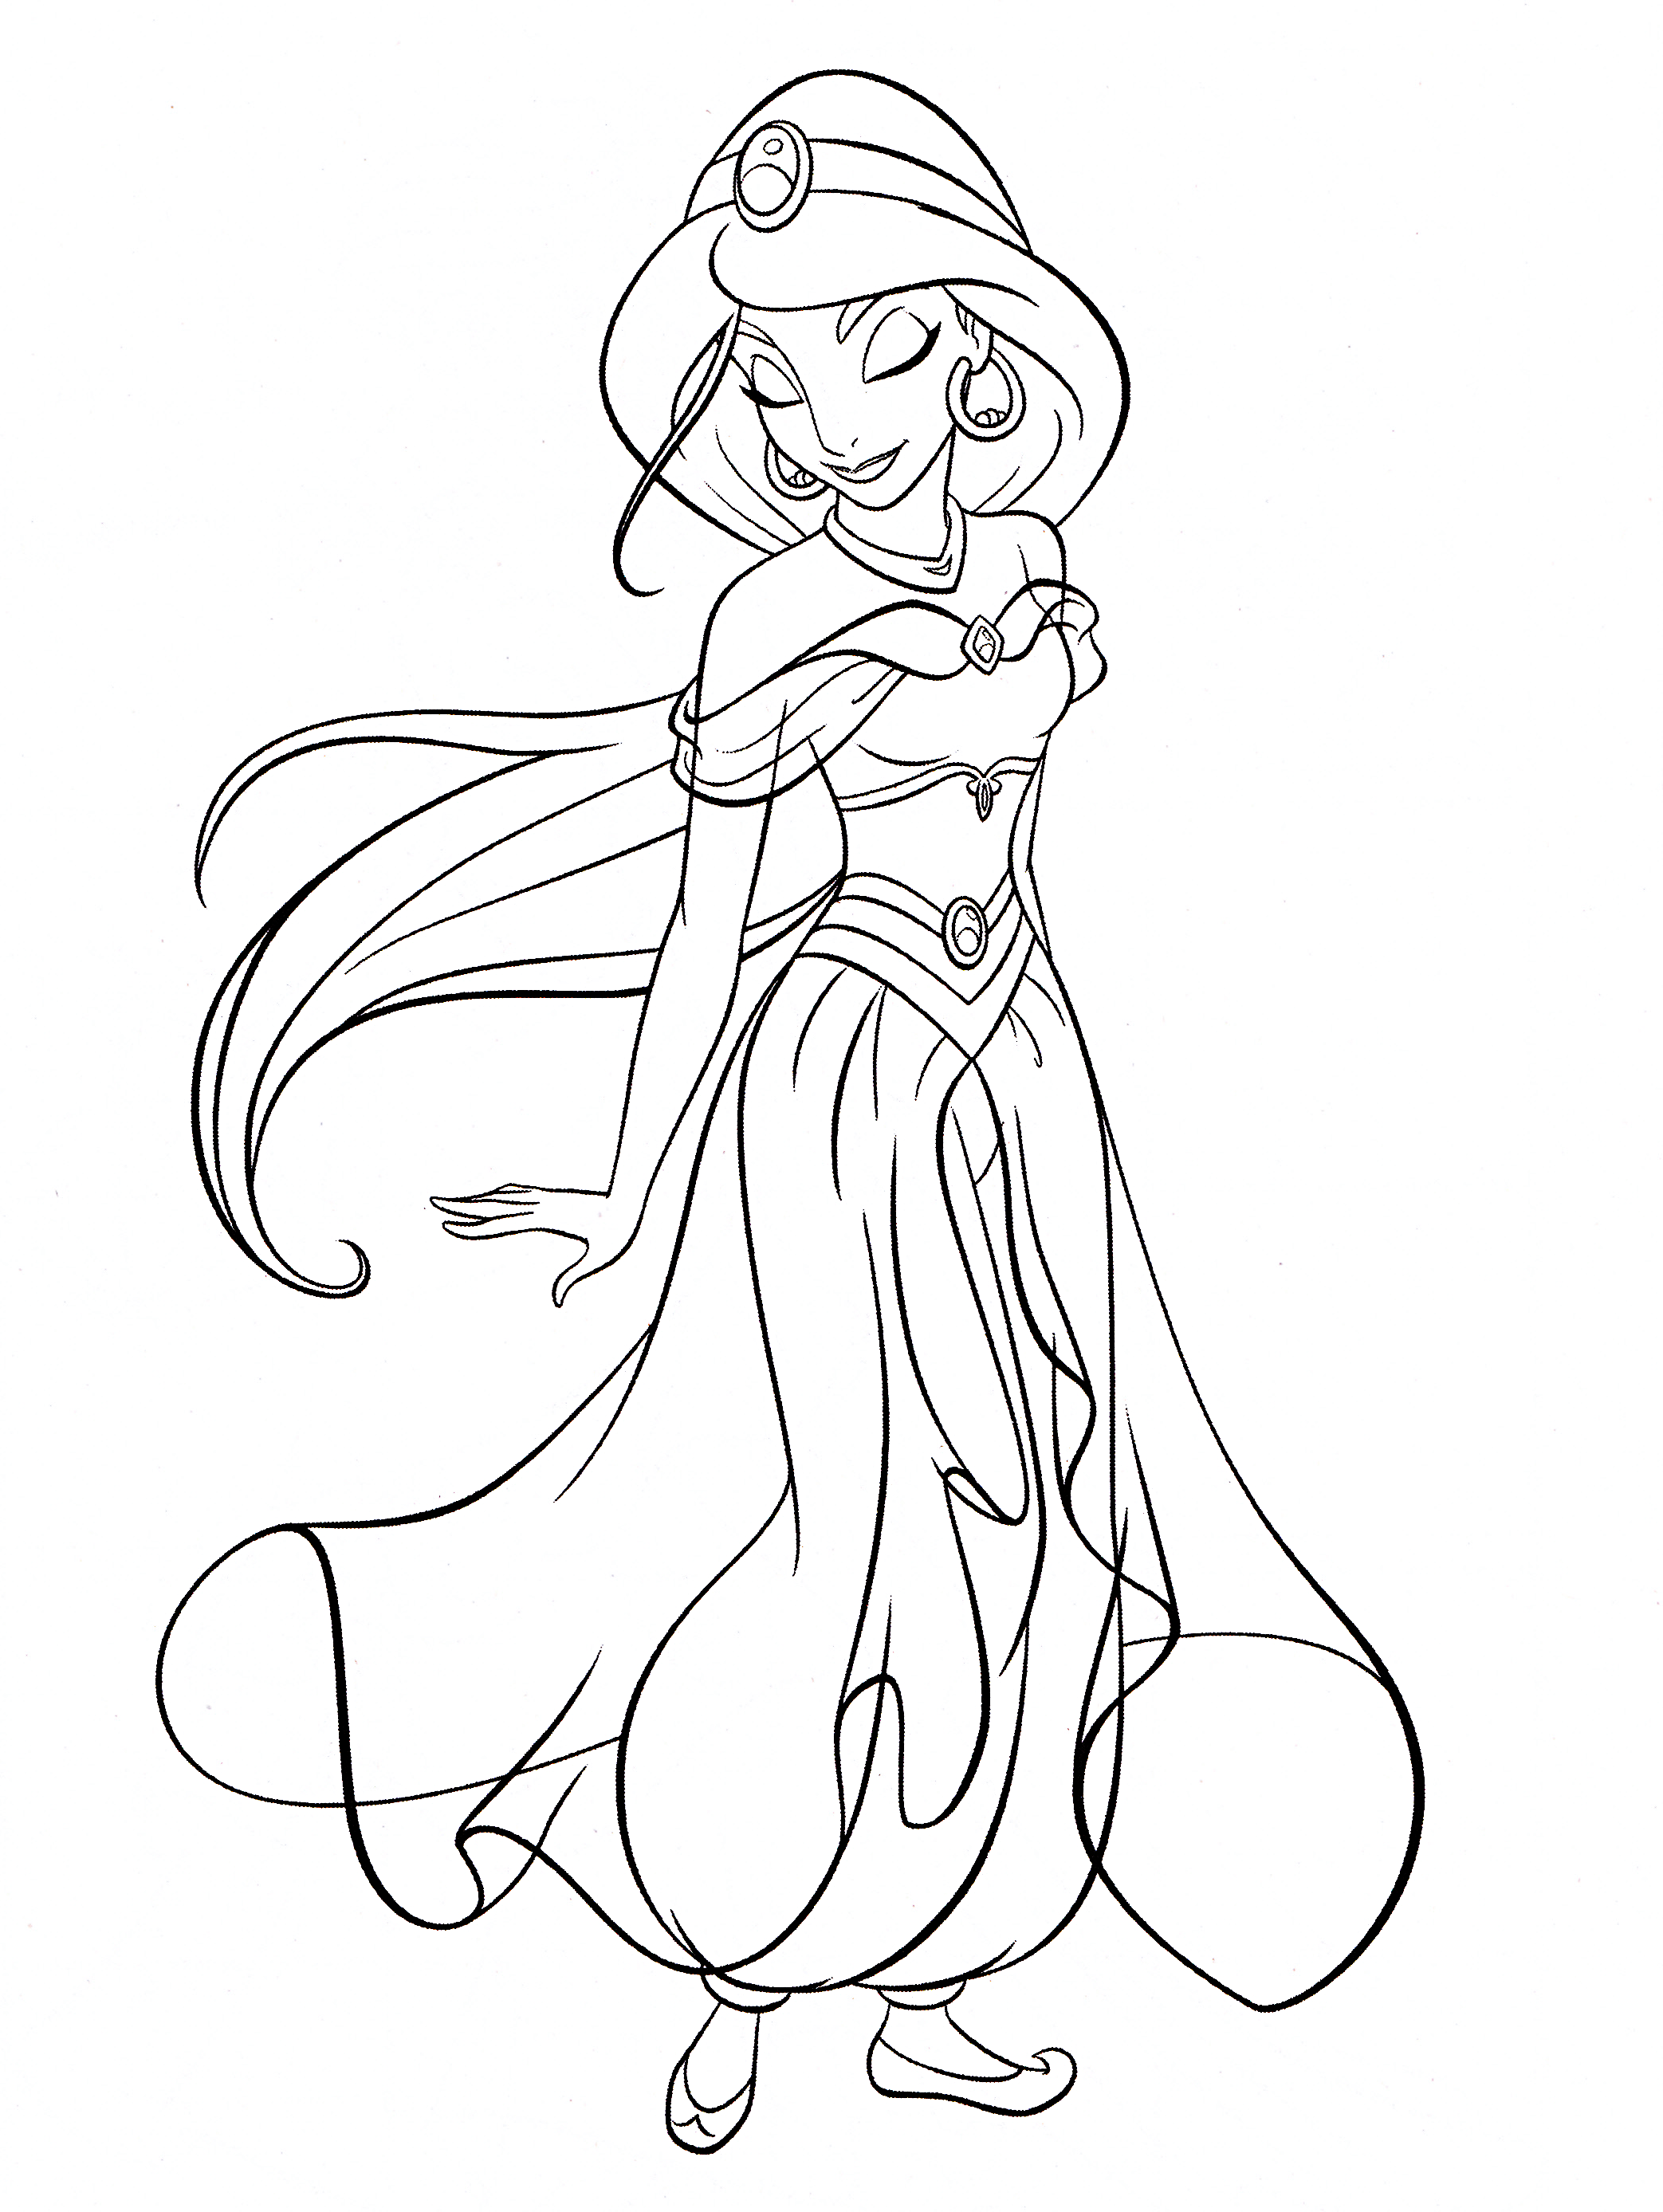 Colouring Pages Disney Jasmine : Walt disney characters images coloring pages